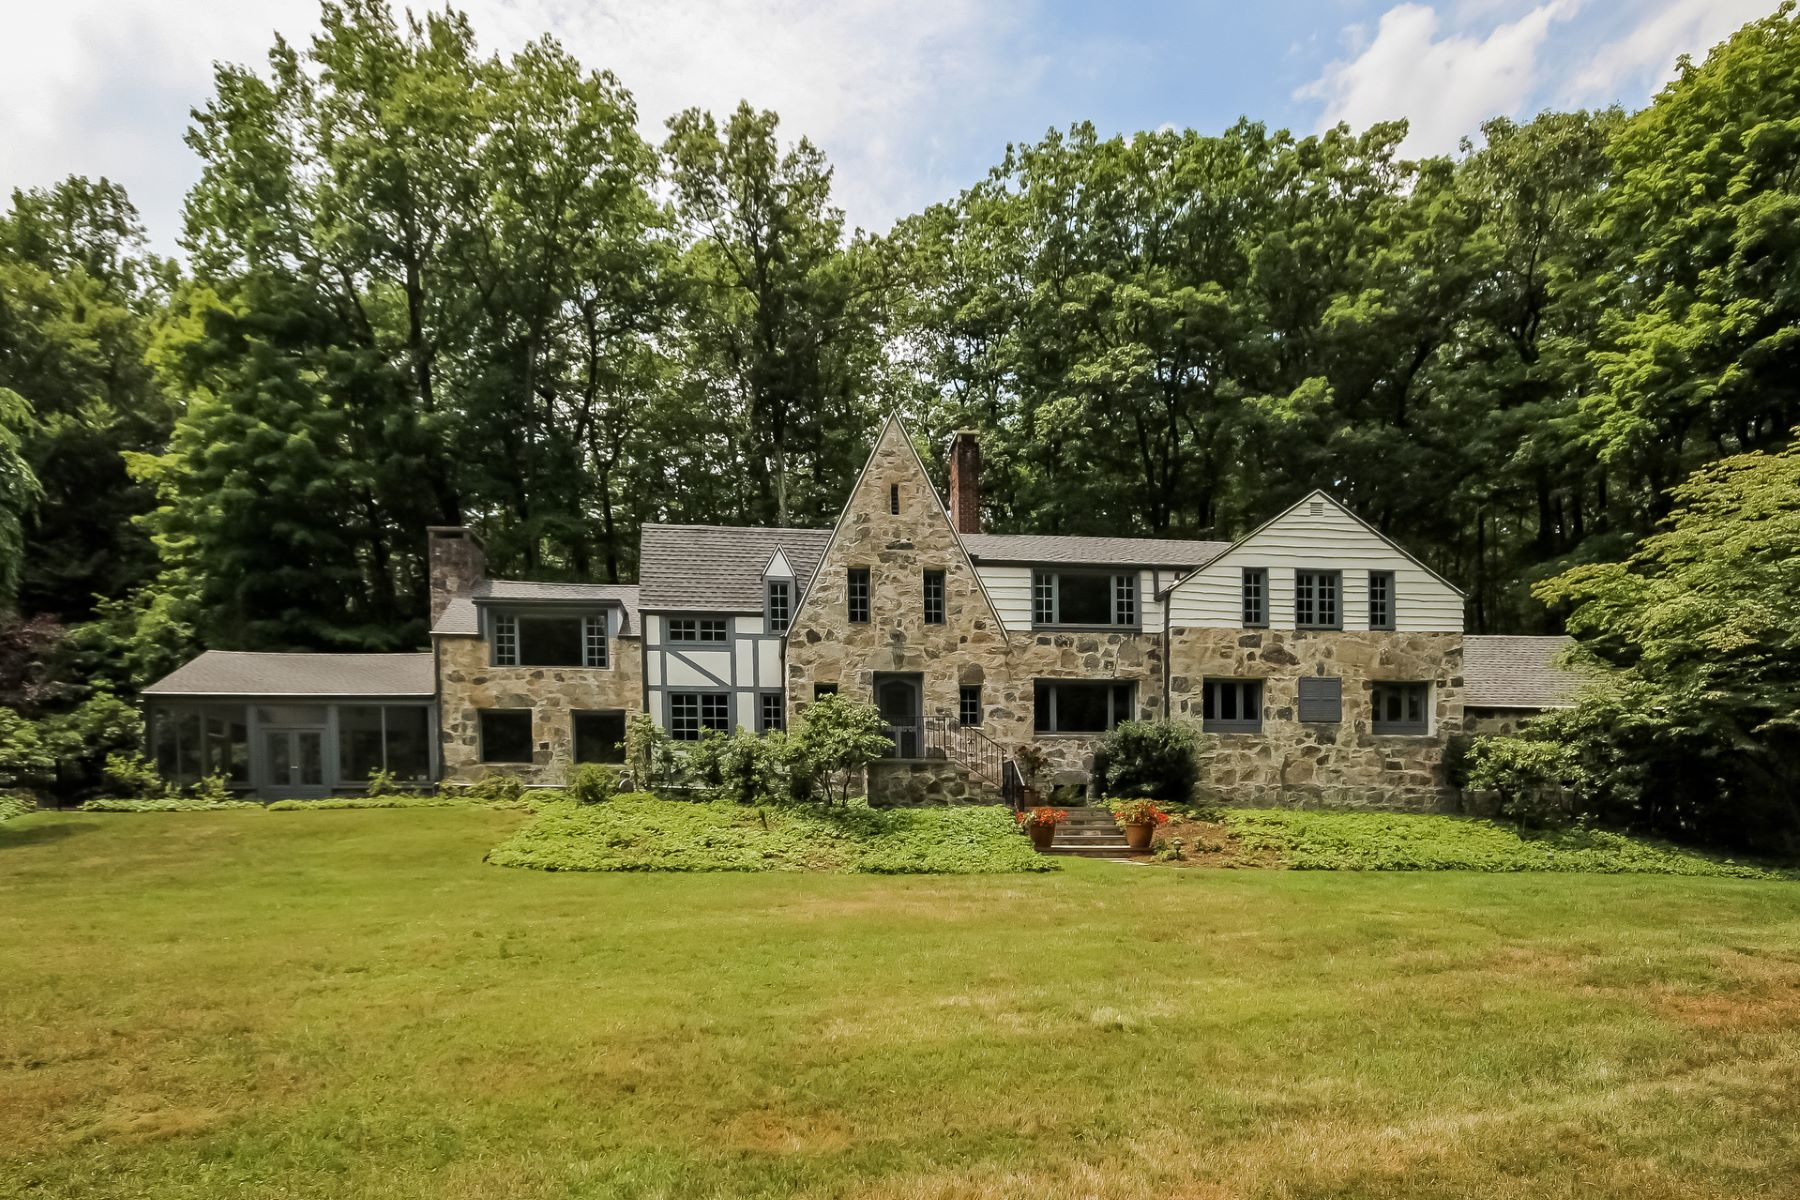 Single Family Home for Sale at North Stamford Tudor 133 Laurel Road, Stamford, Connecticut, 06903 United States